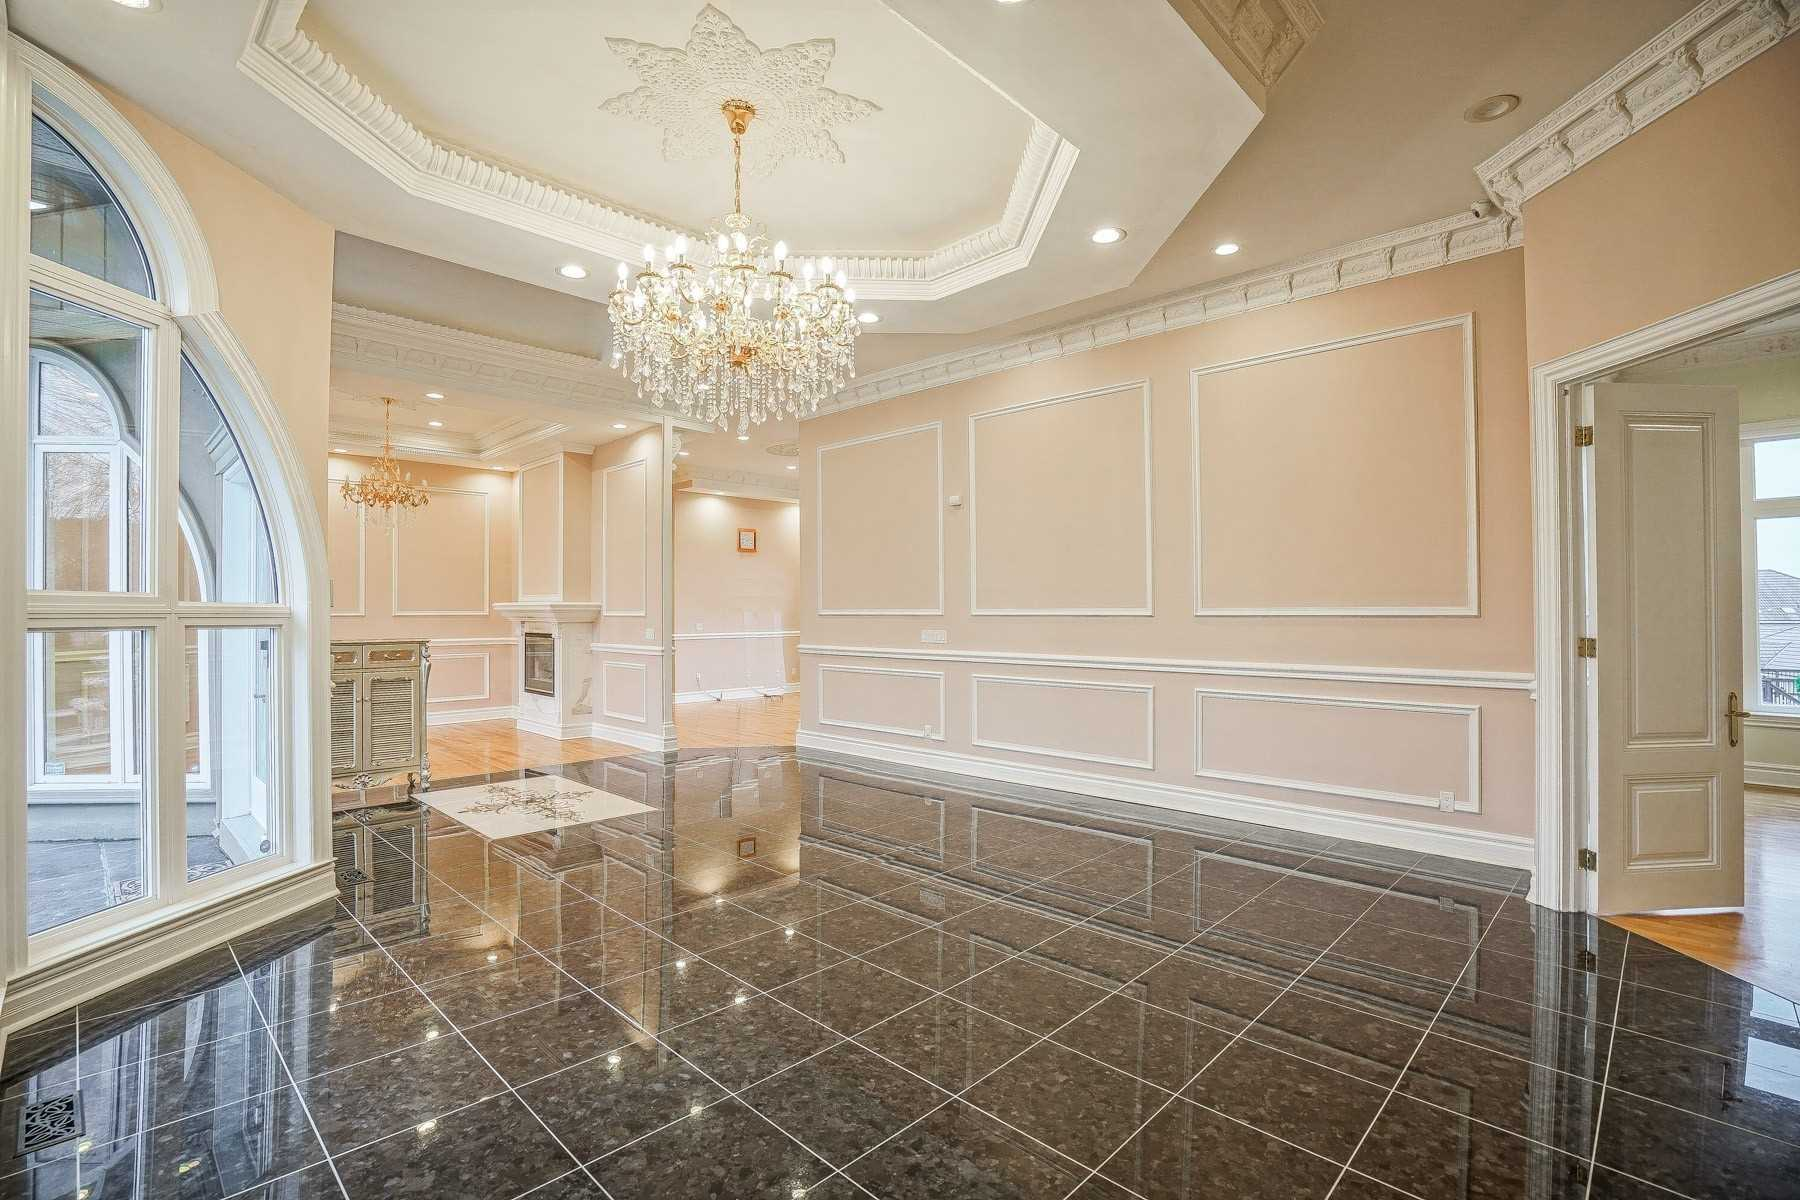 Detached house For Sale In Richmond Hill - 1 Worley Hall Gate, Richmond Hill, Ontario, Canada L4E3M9 , 4 Bedrooms Bedrooms, ,4 BathroomsBathrooms,Detached,For Sale,Worley Hall